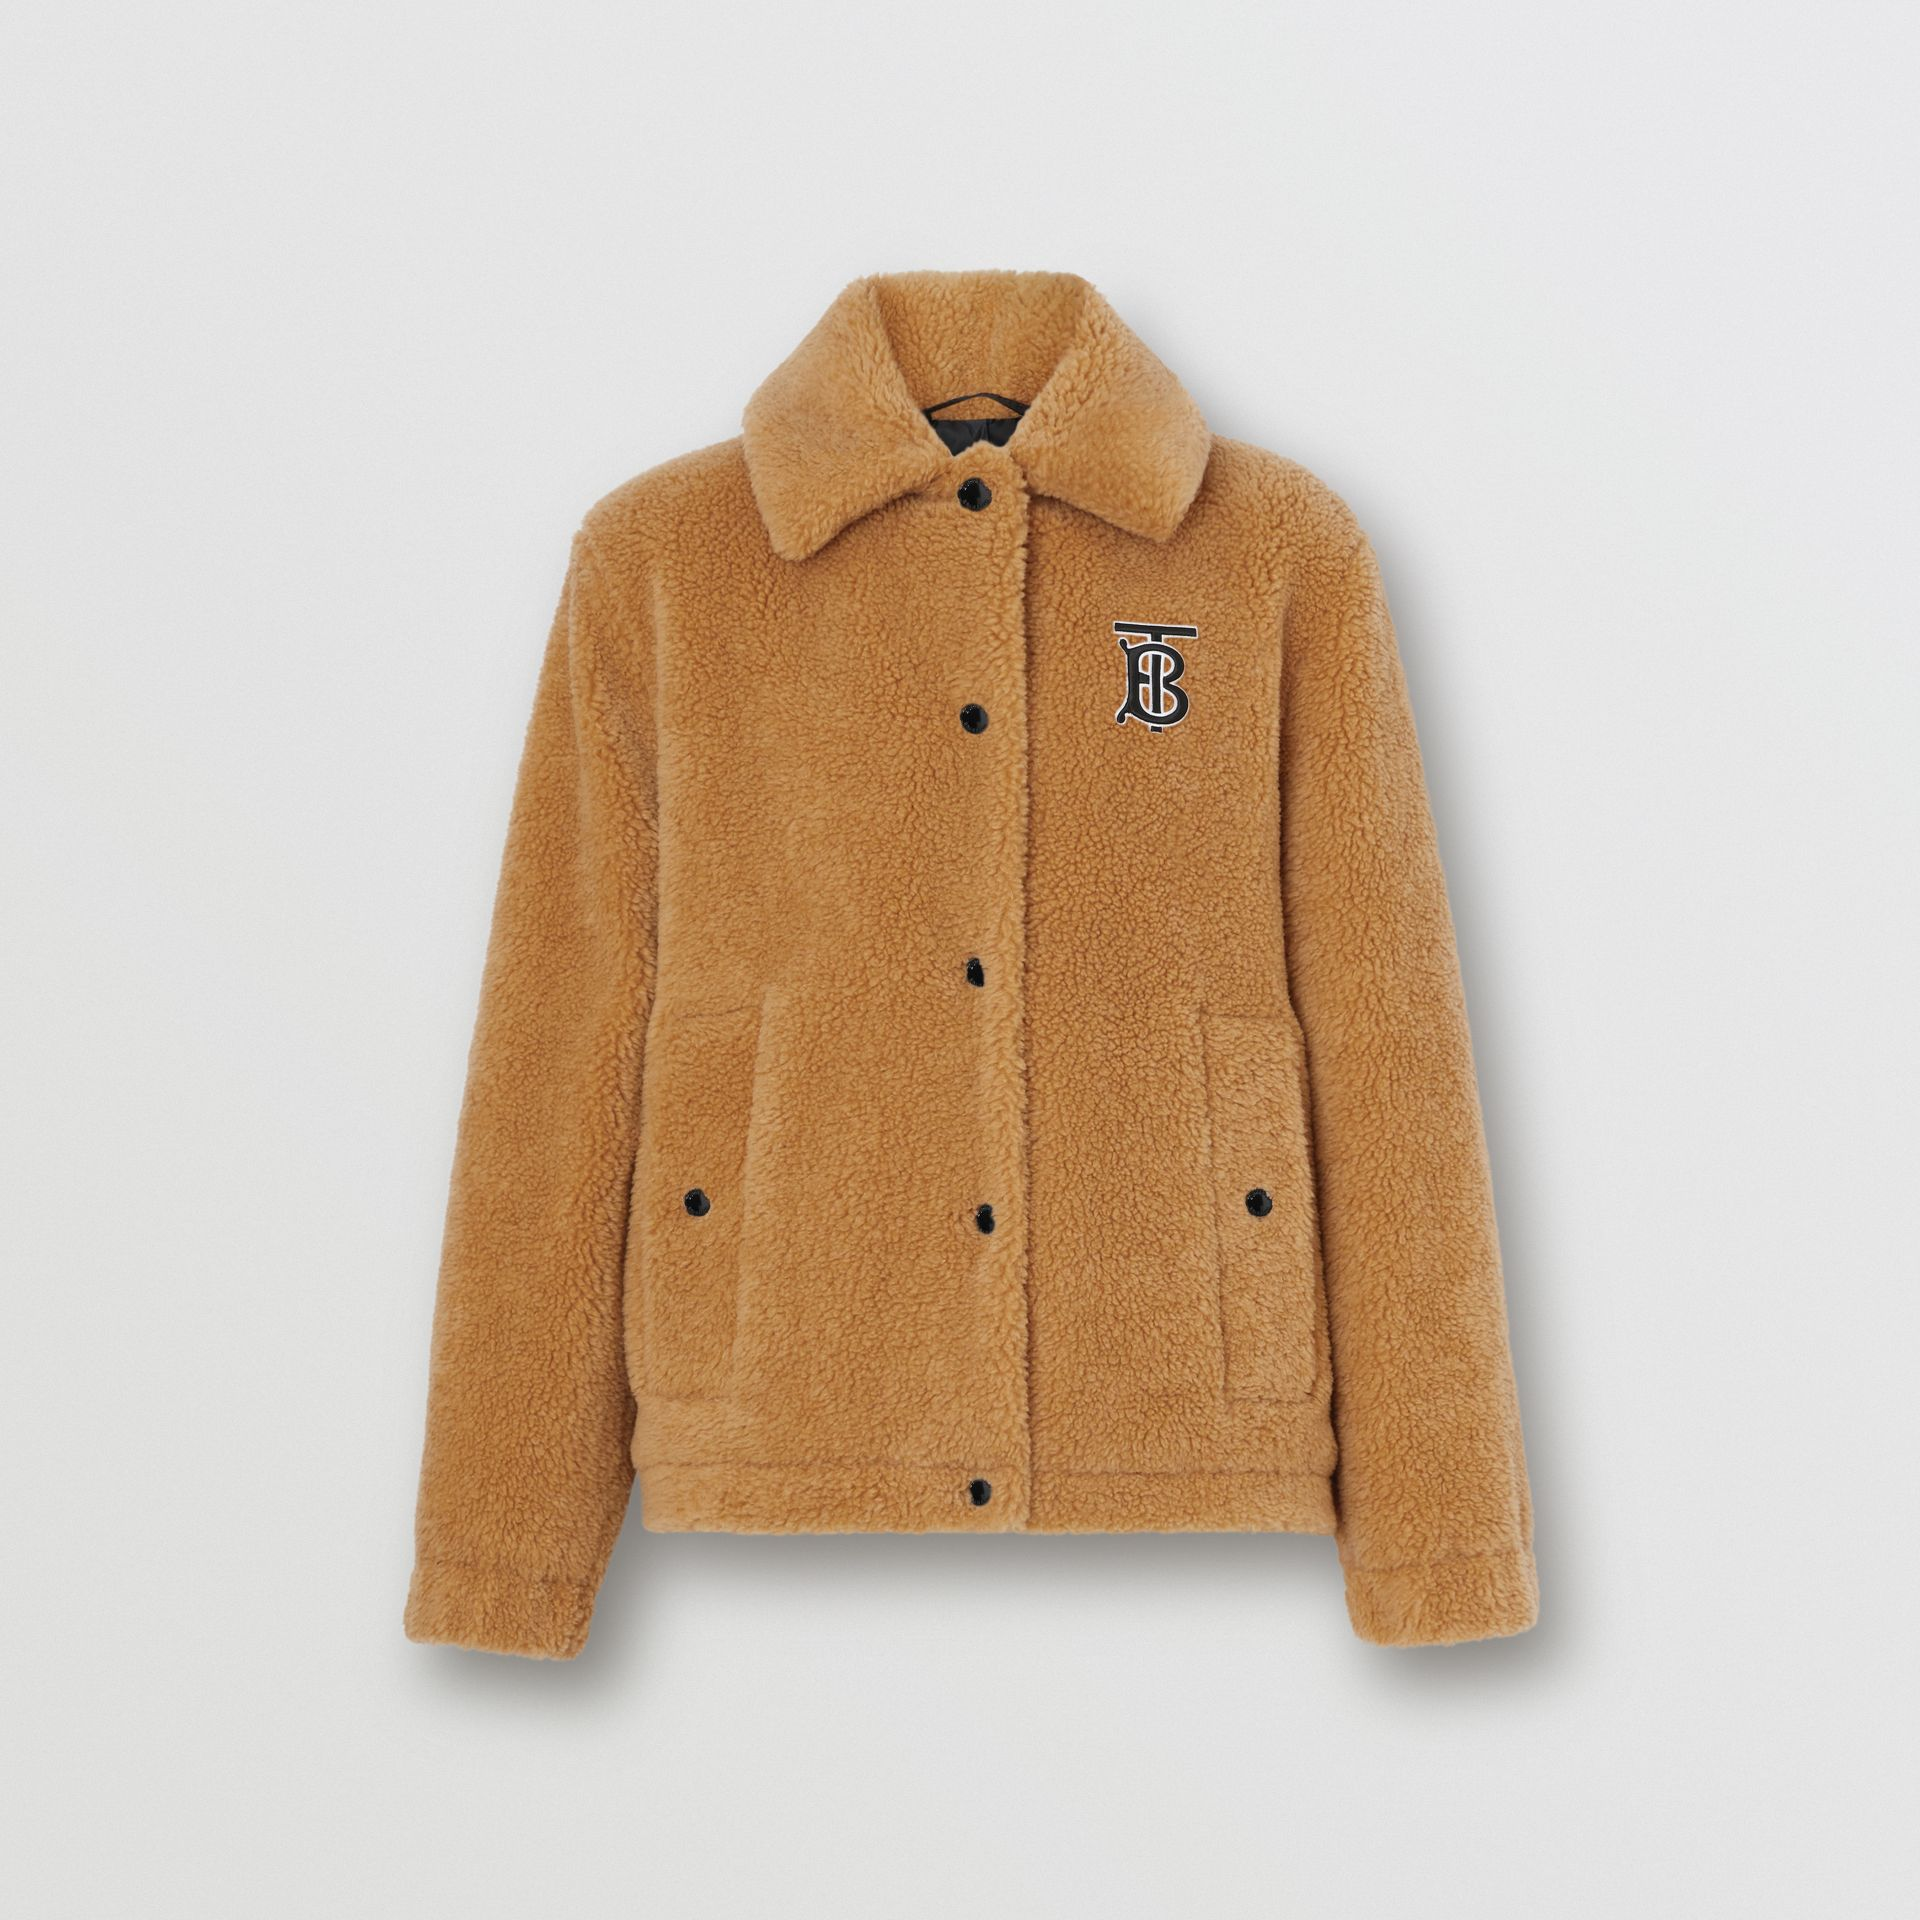 Monogram Motif Fleece Jacket in Camel - Women | Burberry - gallery image 3